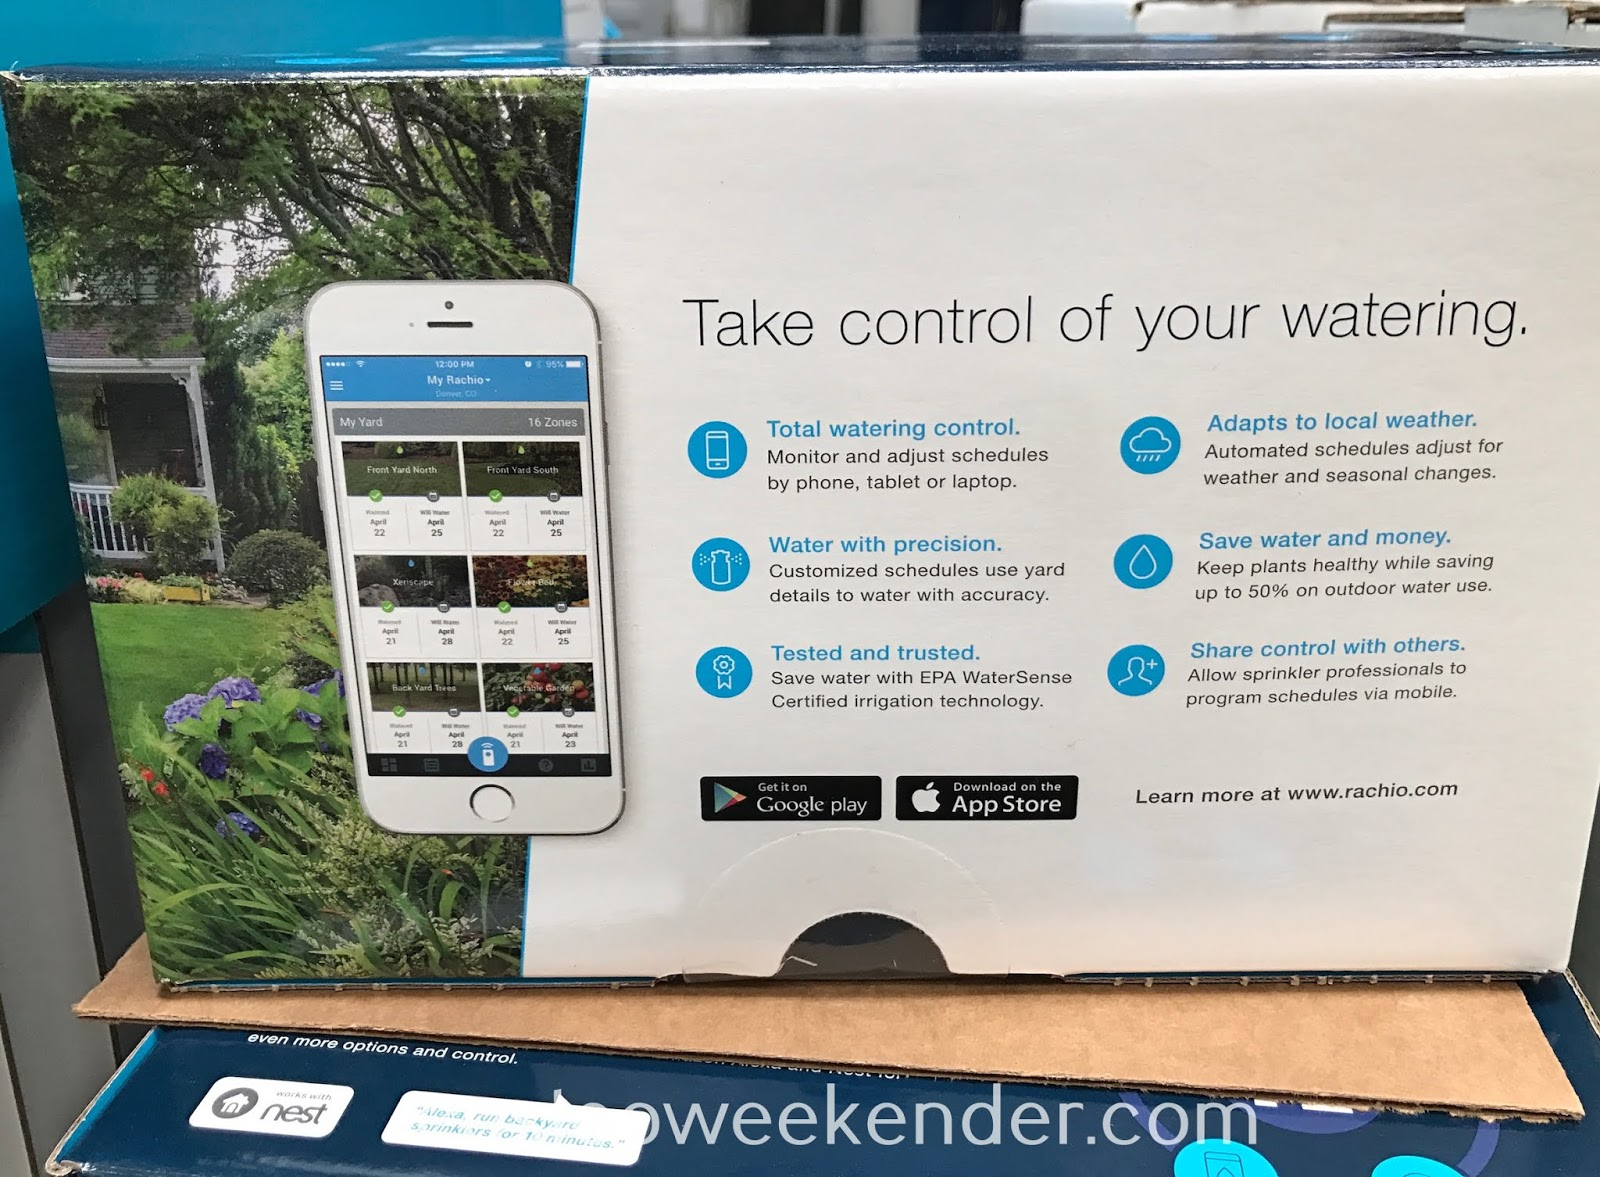 Costco 1245466 - Rachio Smart Sprinkler Controller: saves money and more effective than traditional timers